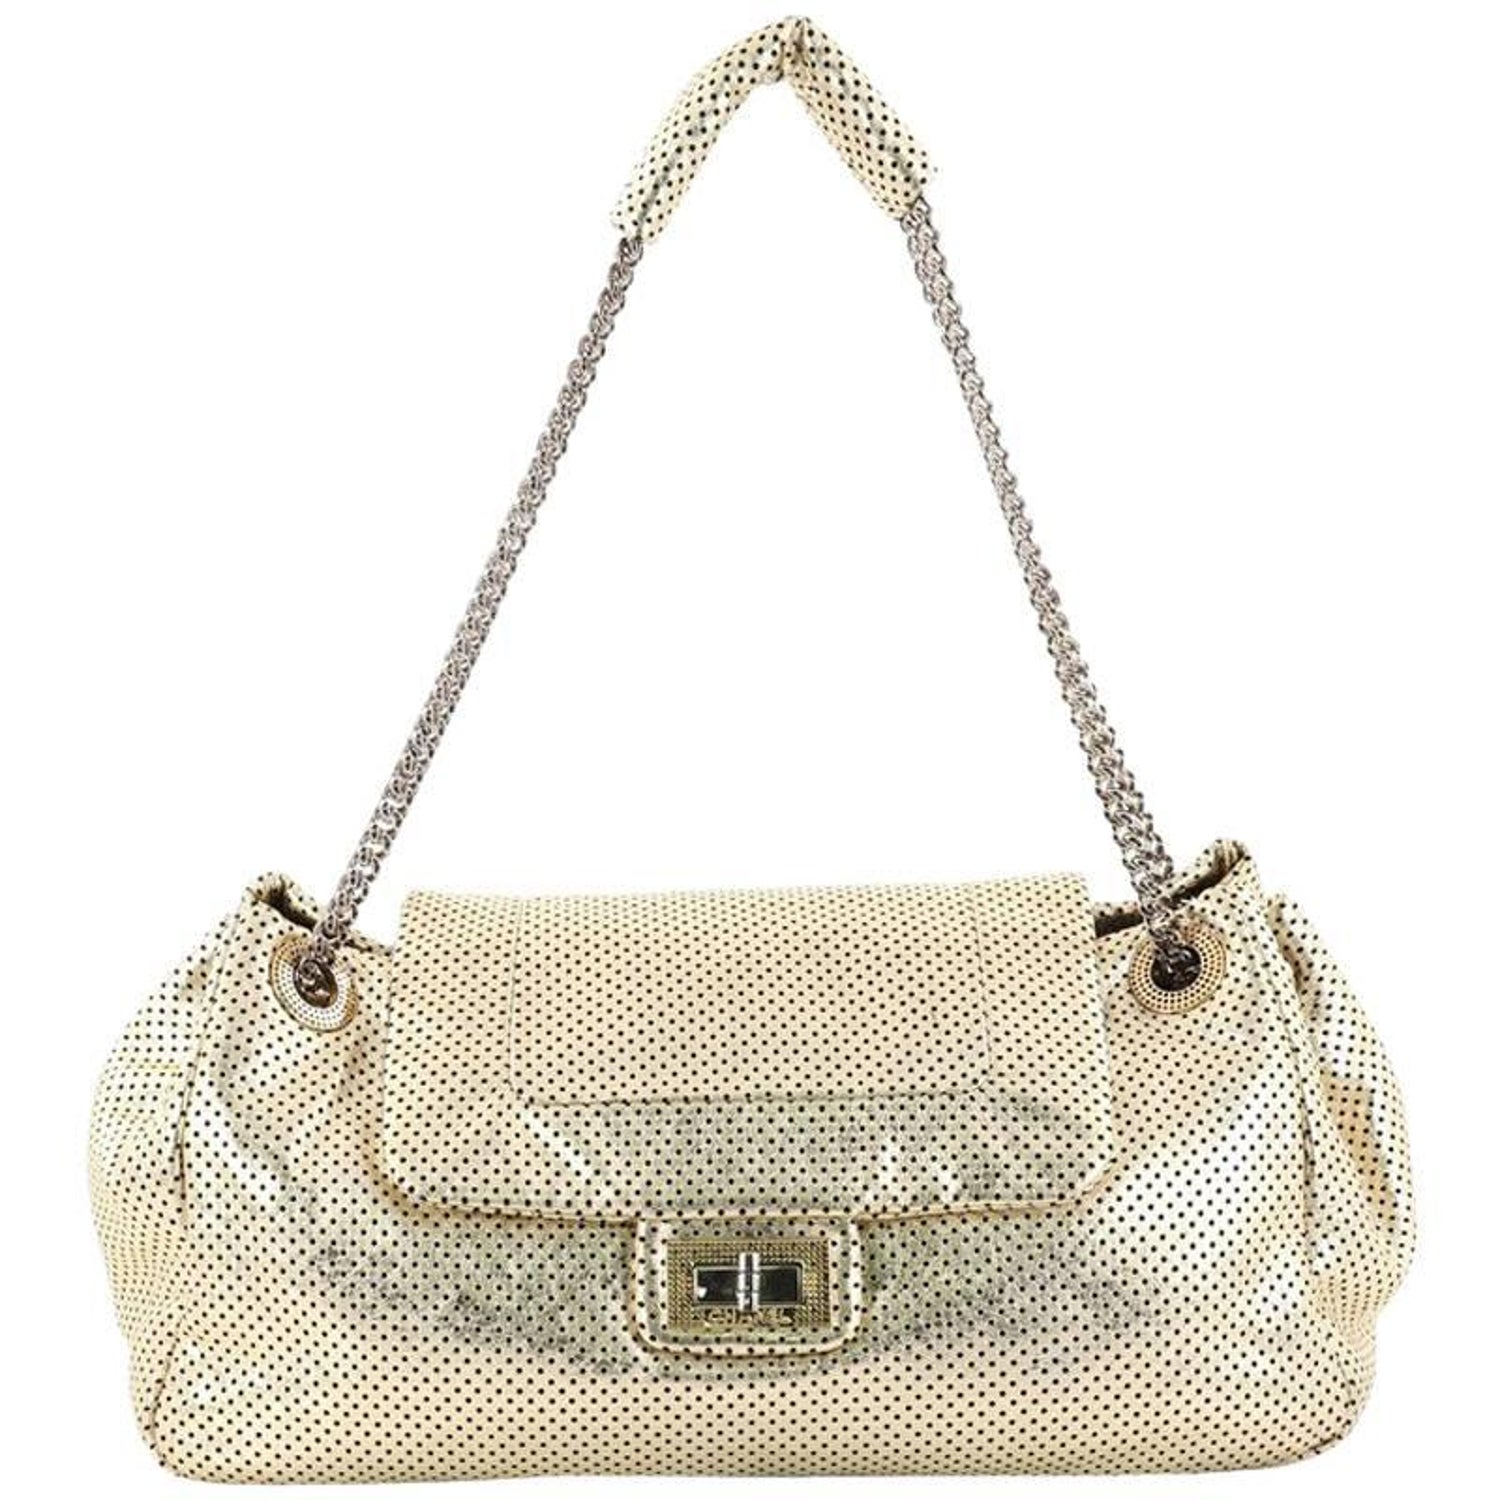 703212fdf896 Chanel Drill Accordion Flap Bag Perforated Leather Large at 1stdibs